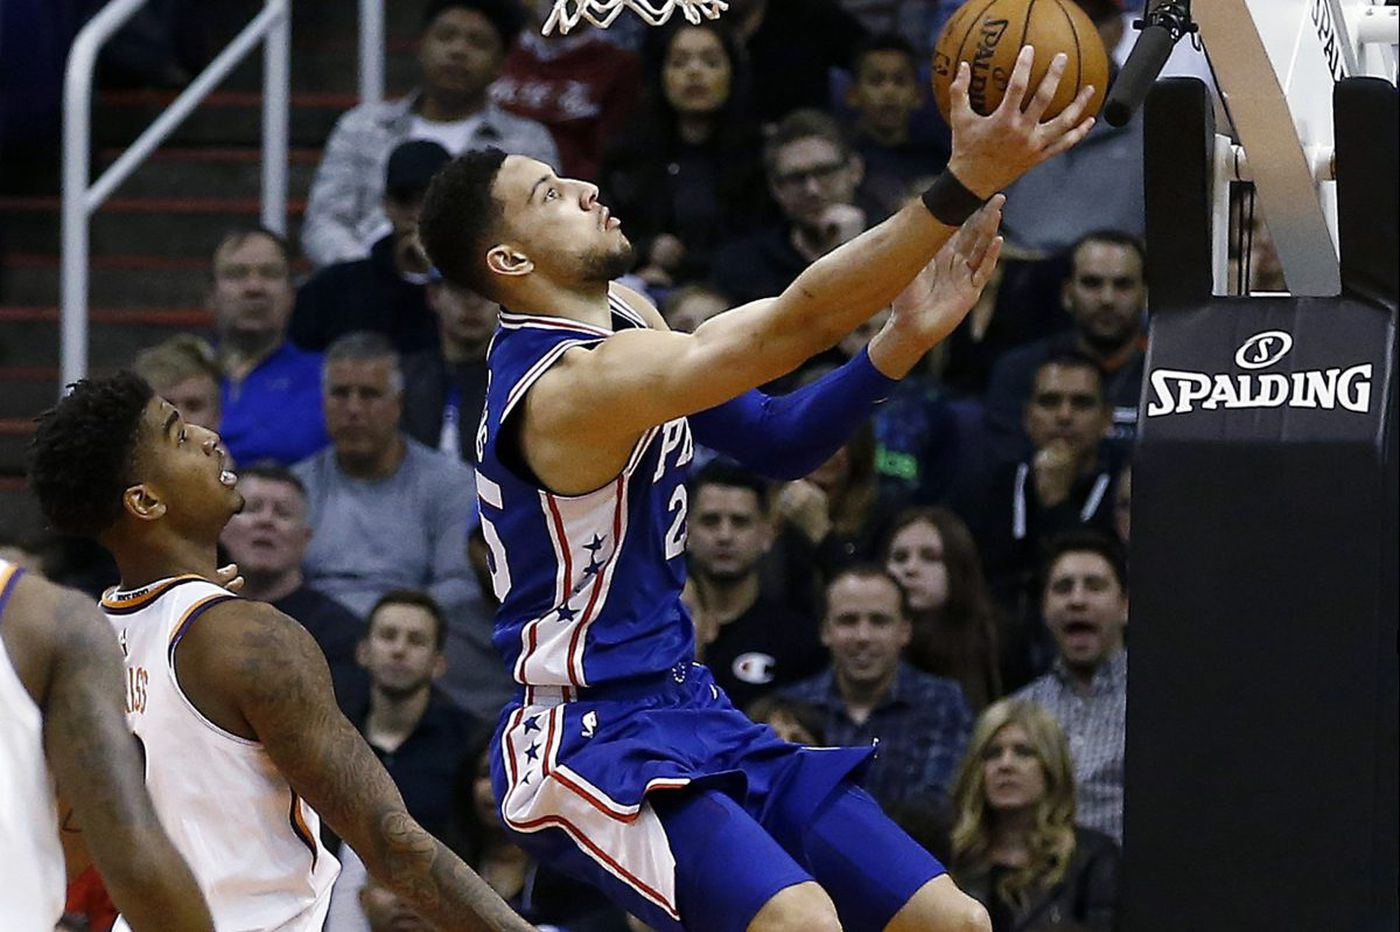 Sixers hold off Suns, Joel Embiid hurts hand but X-Rays come back negative